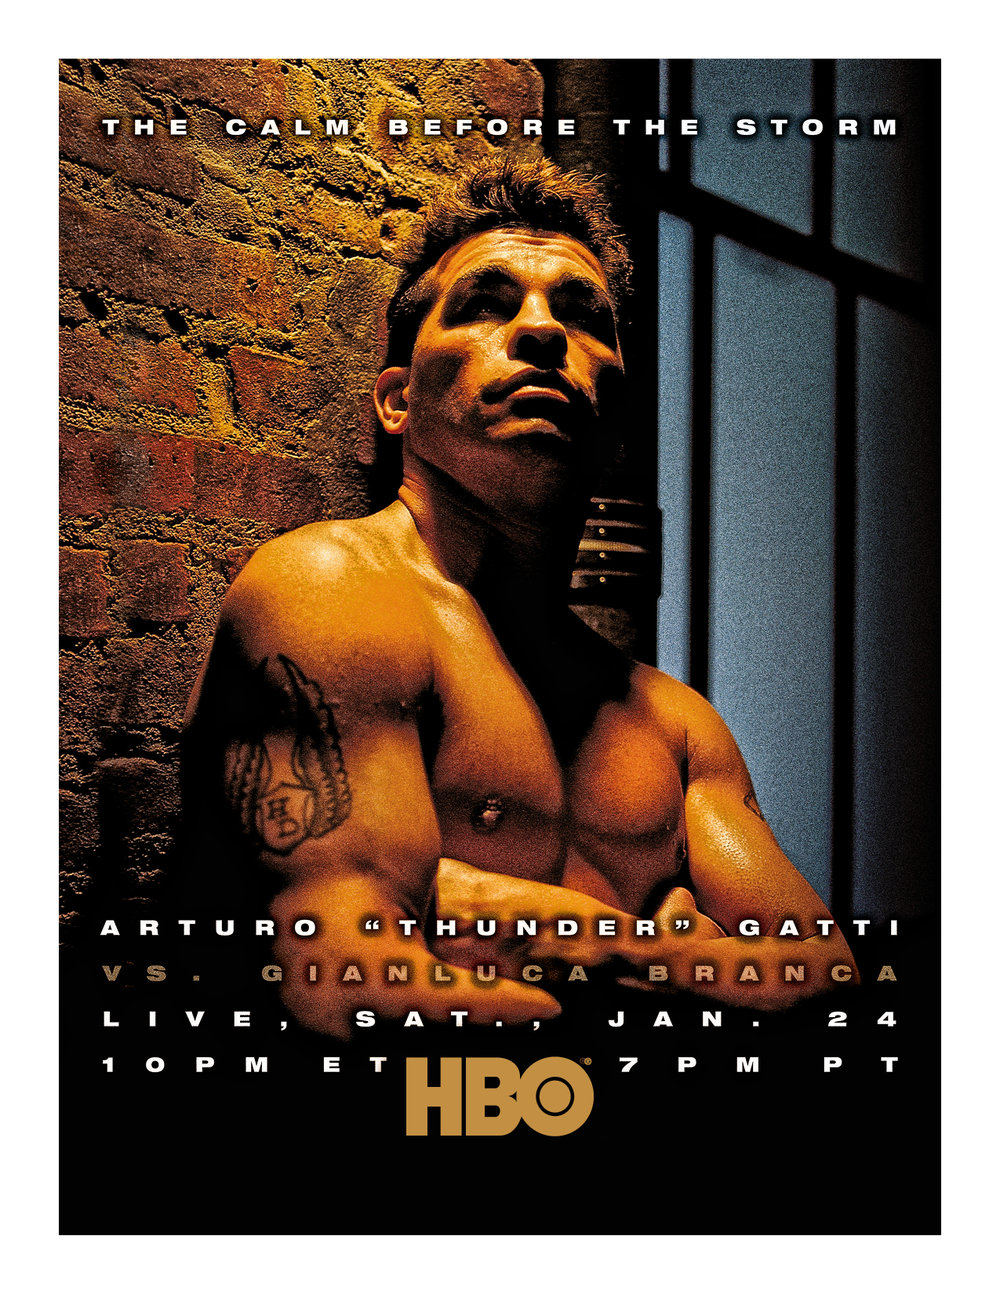 HBO Boxing P360 Website23.jpg